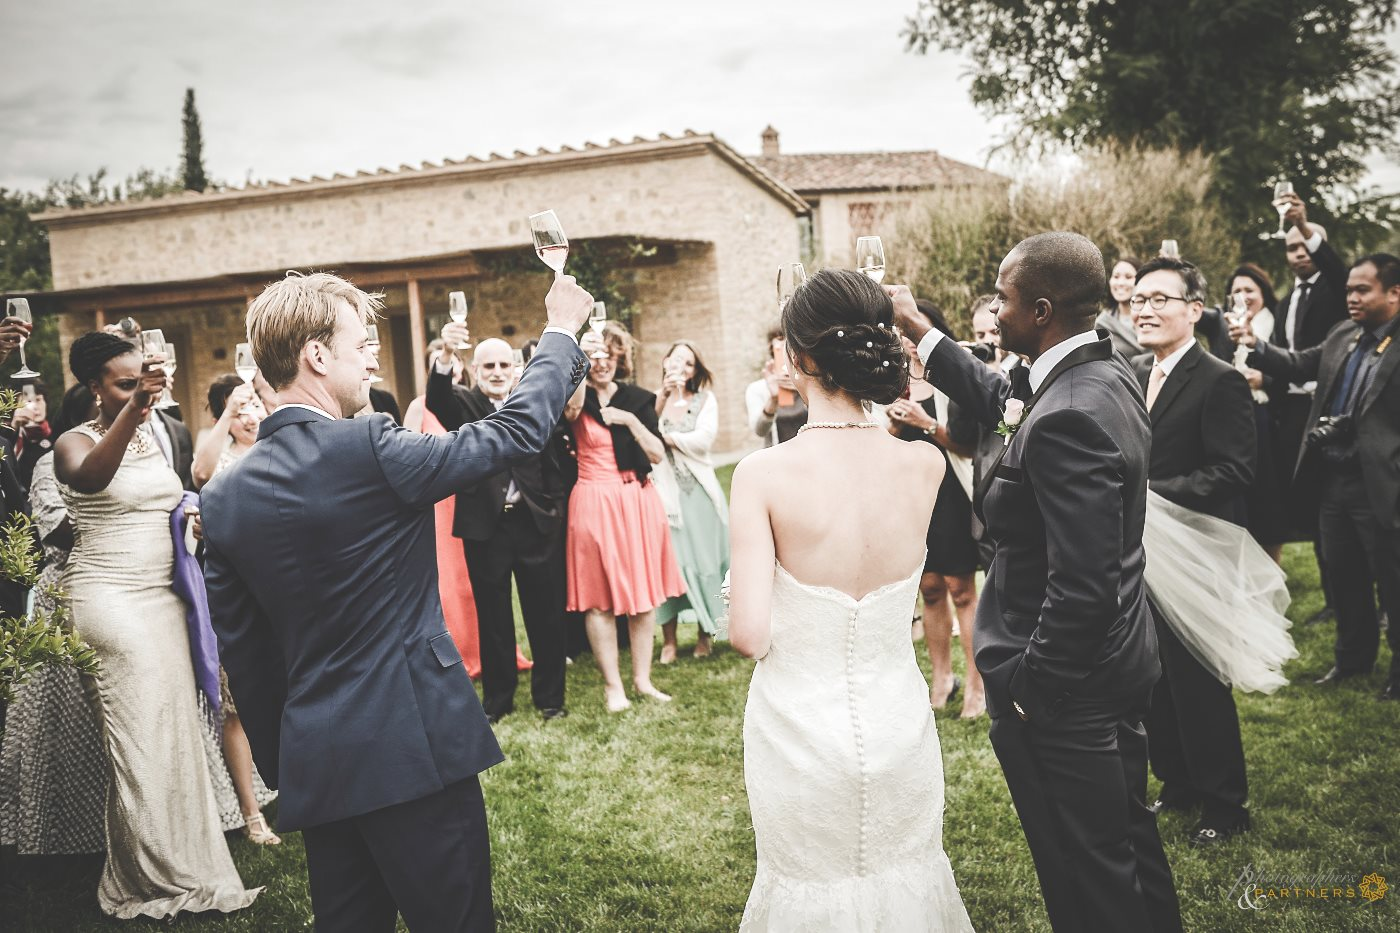 wedding_photos_castelfalfi_15.jpg